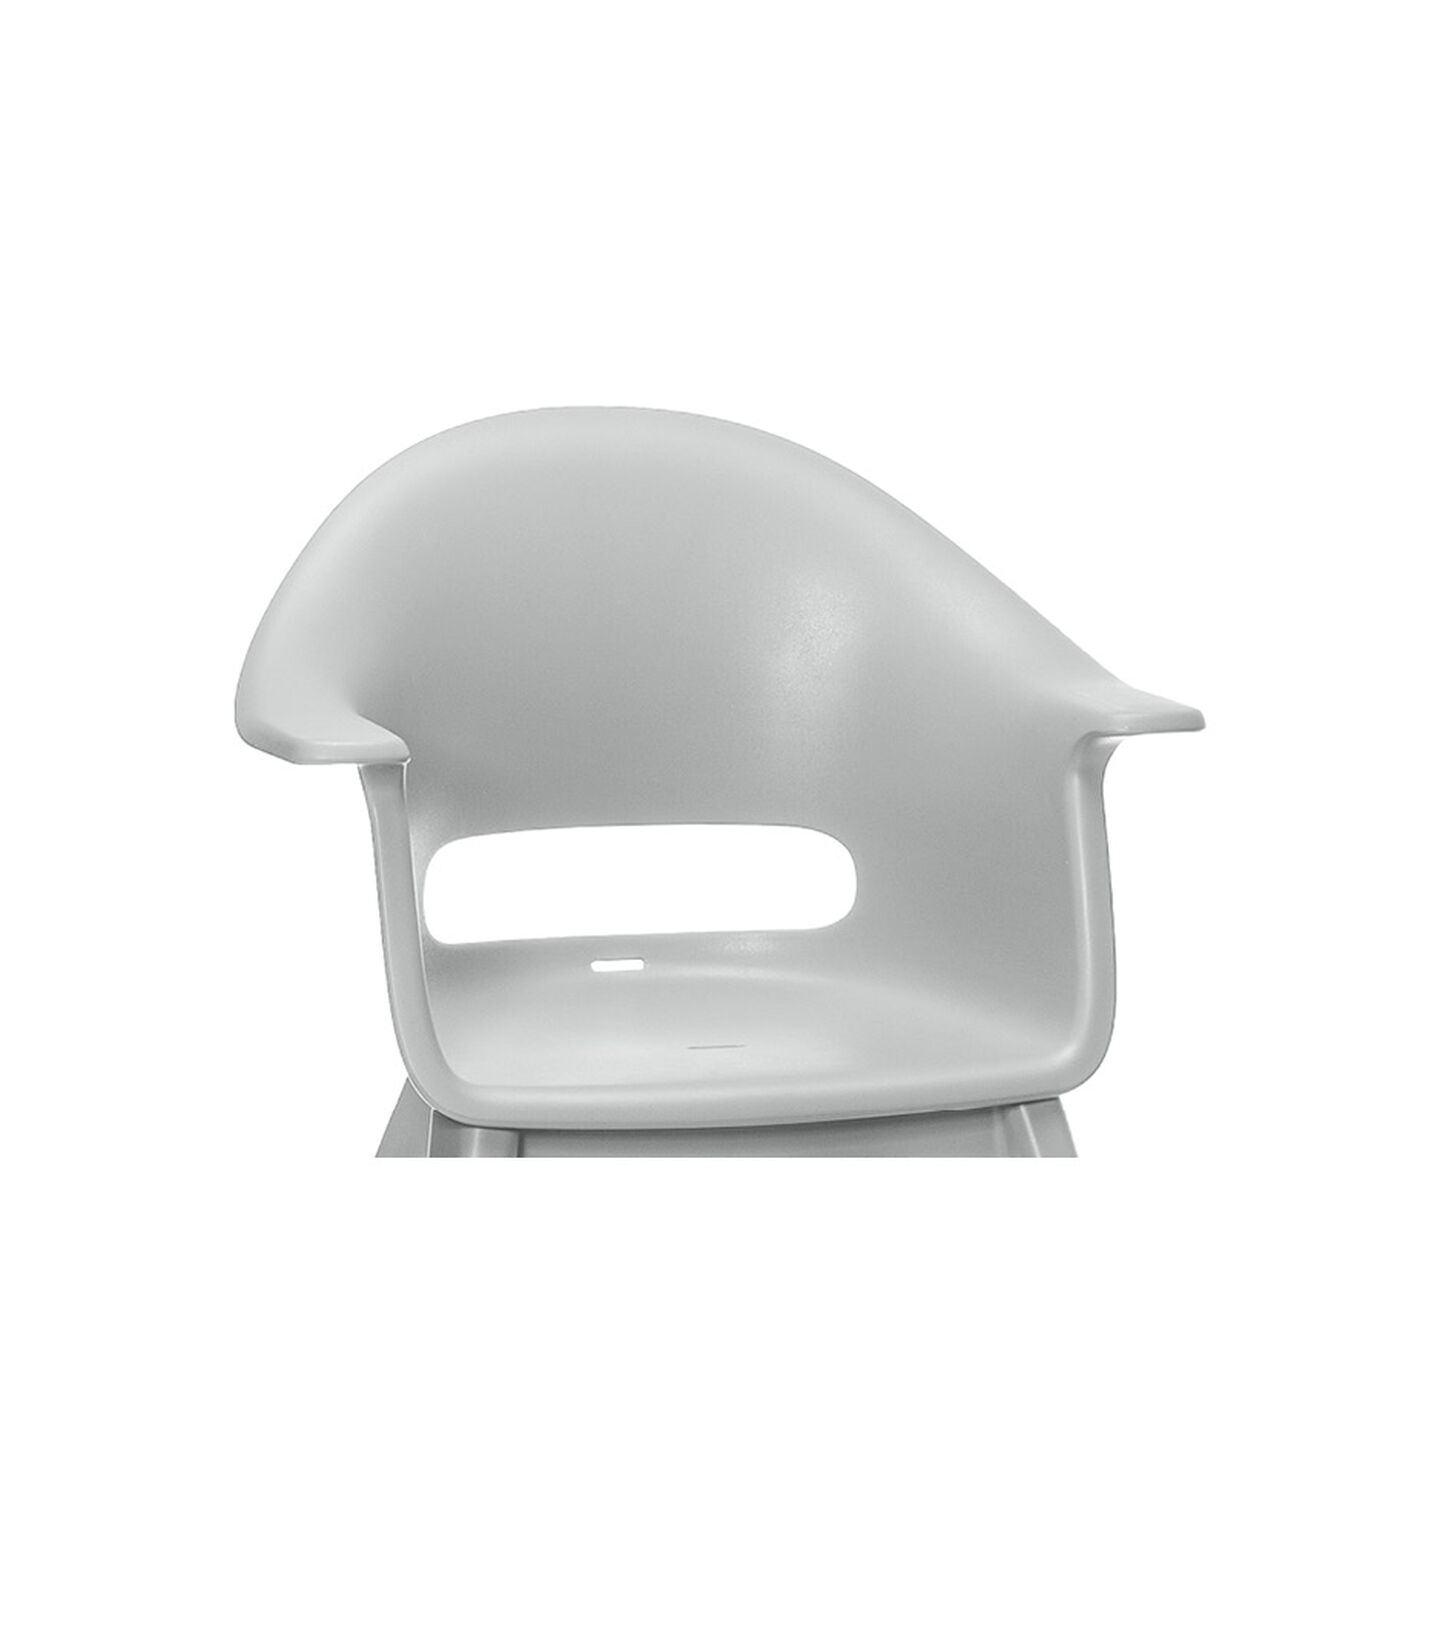 Stokke® Clikk™ Seat in Cloud Grey. Available as Spare part. view 2